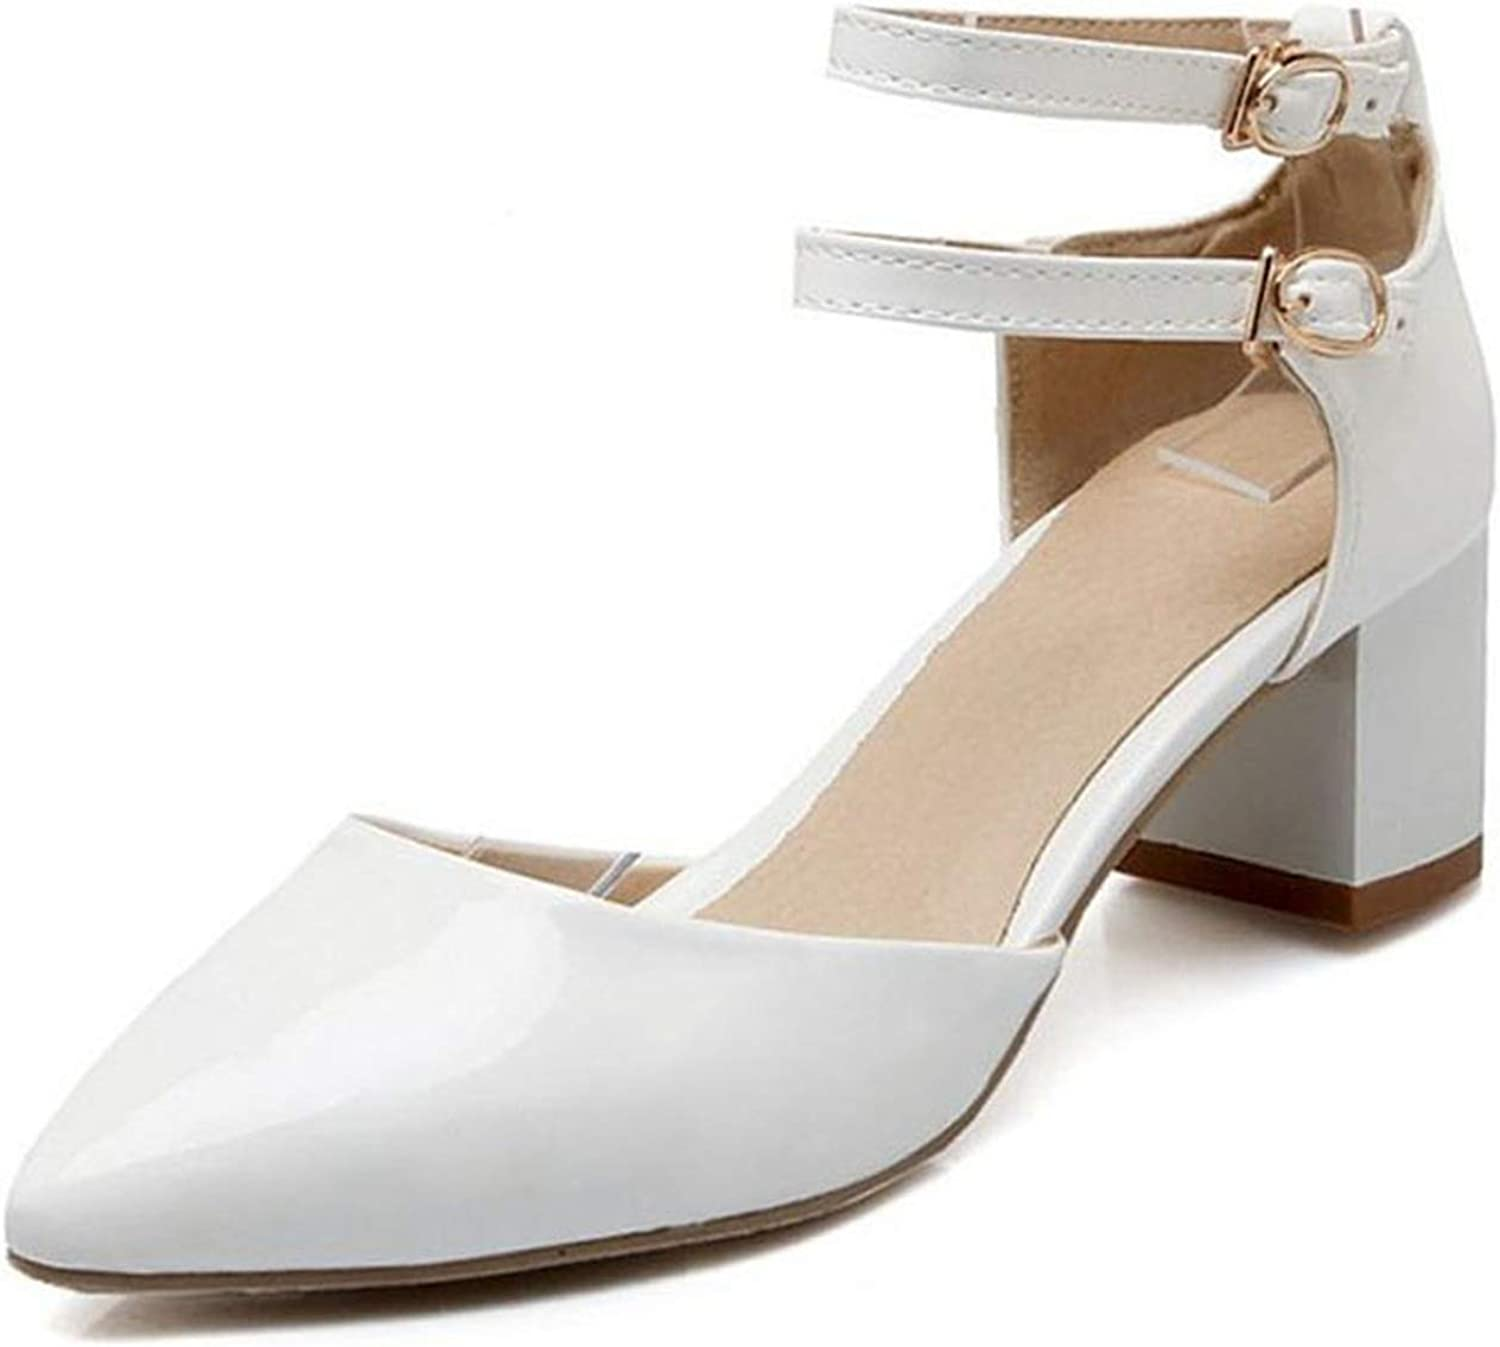 Fairly Elegant High Heel Ankle Strap Pointed Toe Thick Heel Summer Party shoes Sandal,White,8